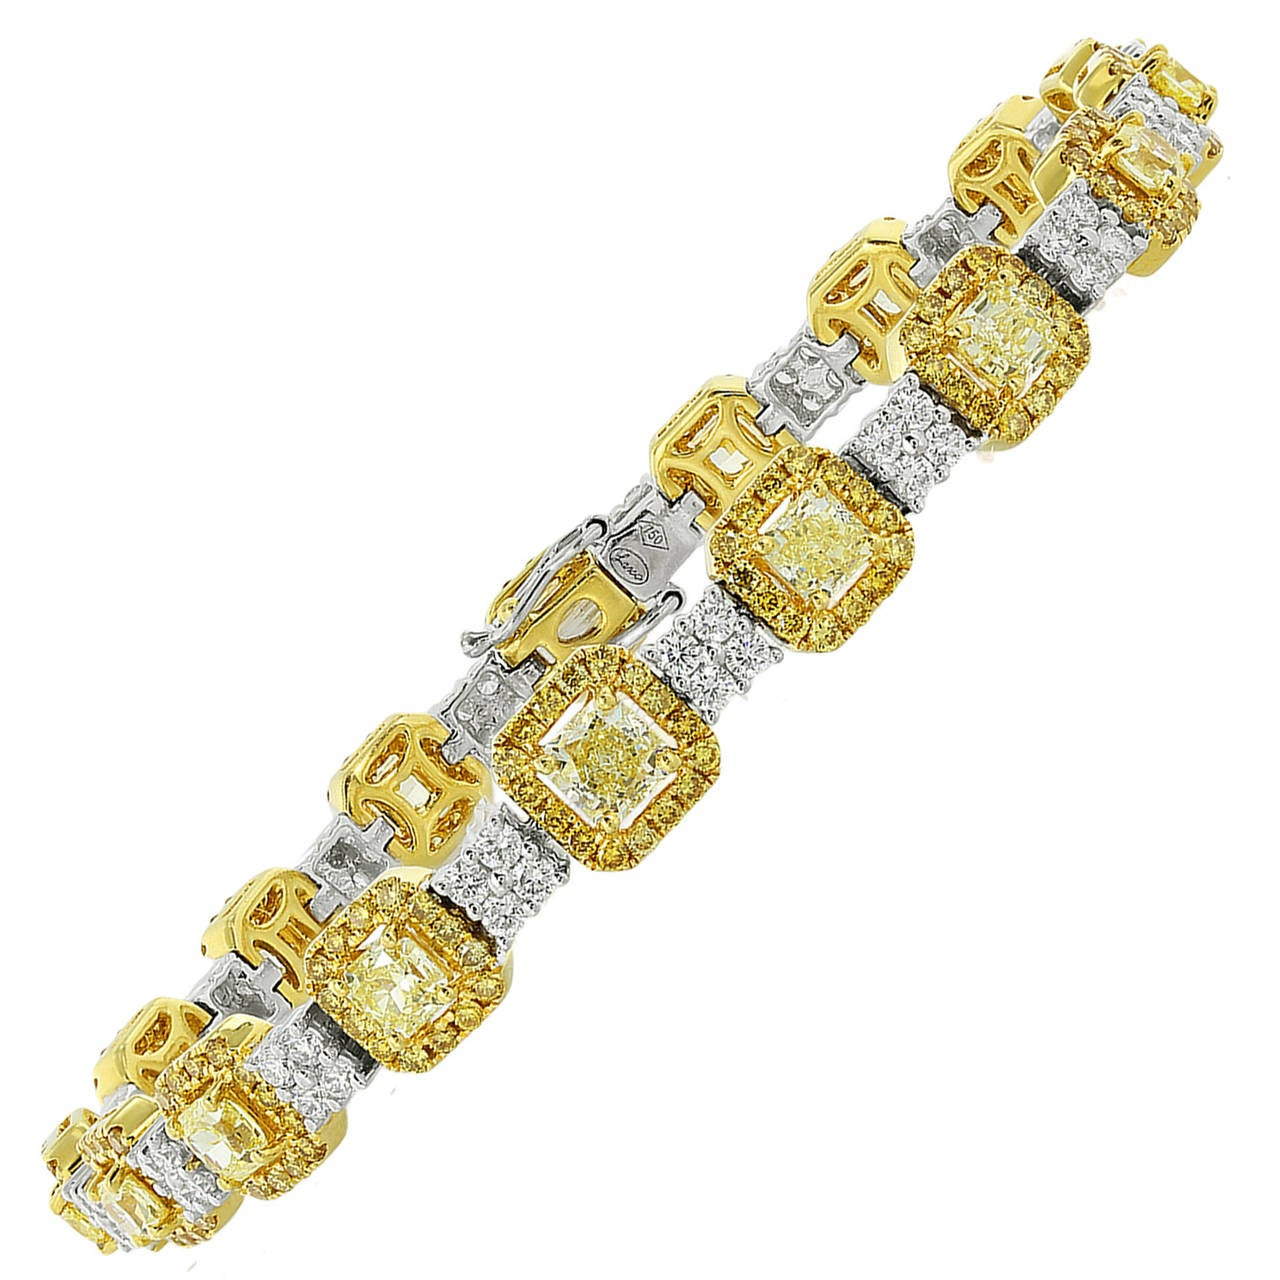 5.14 Carat Diamond Gold Link Bracelet